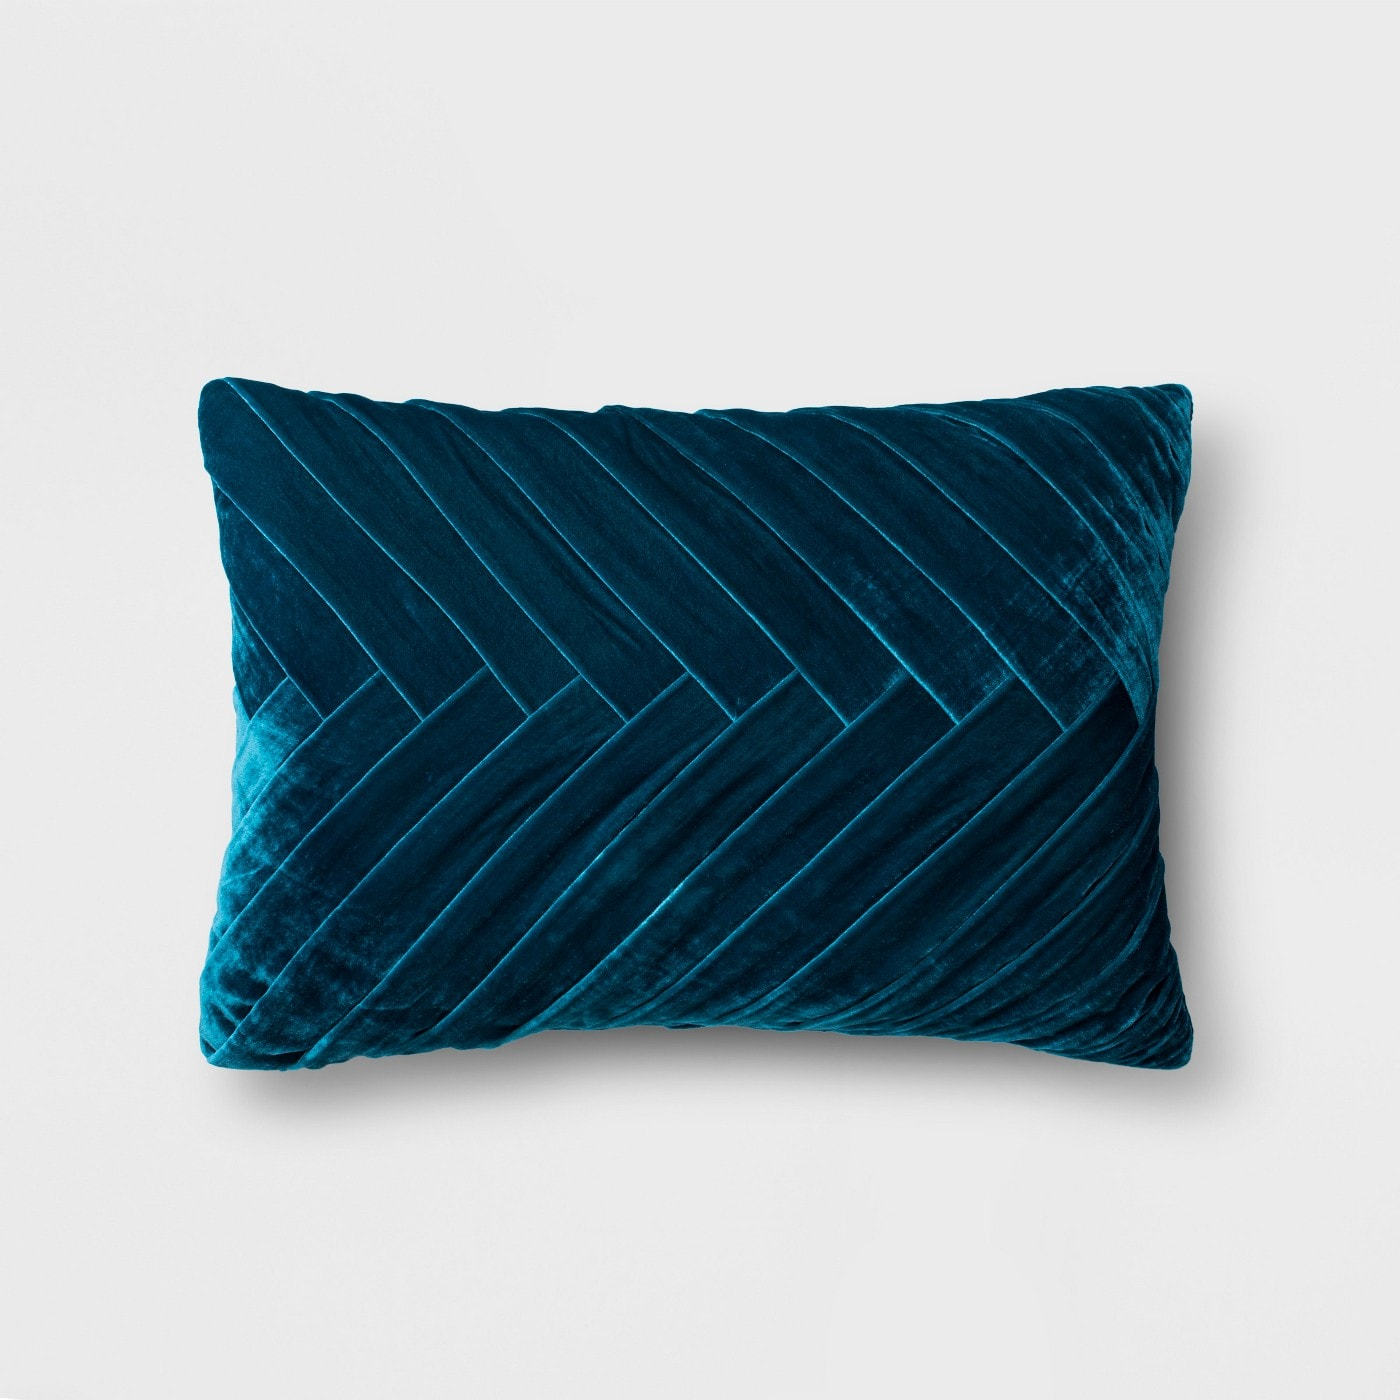 Opalhouse velvet pillow